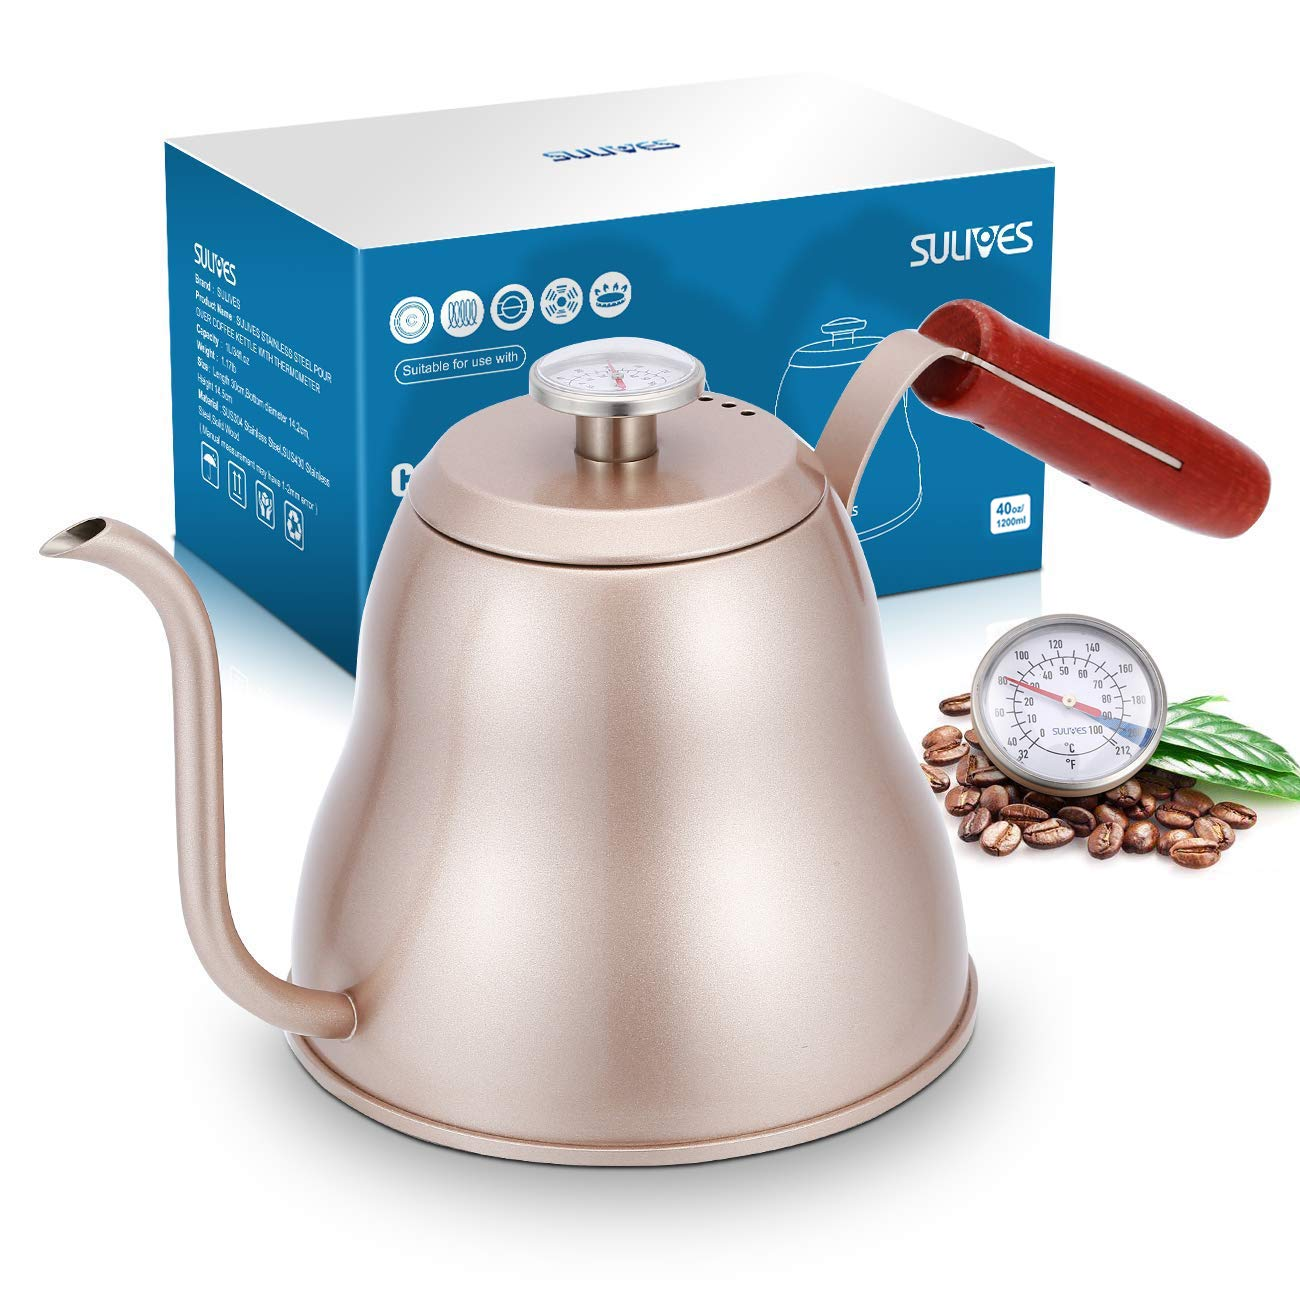 SULIVES 1.2L/40oz Stainless Steel with Built-in Thermometer Pour Over Coffee Kettle, Gold